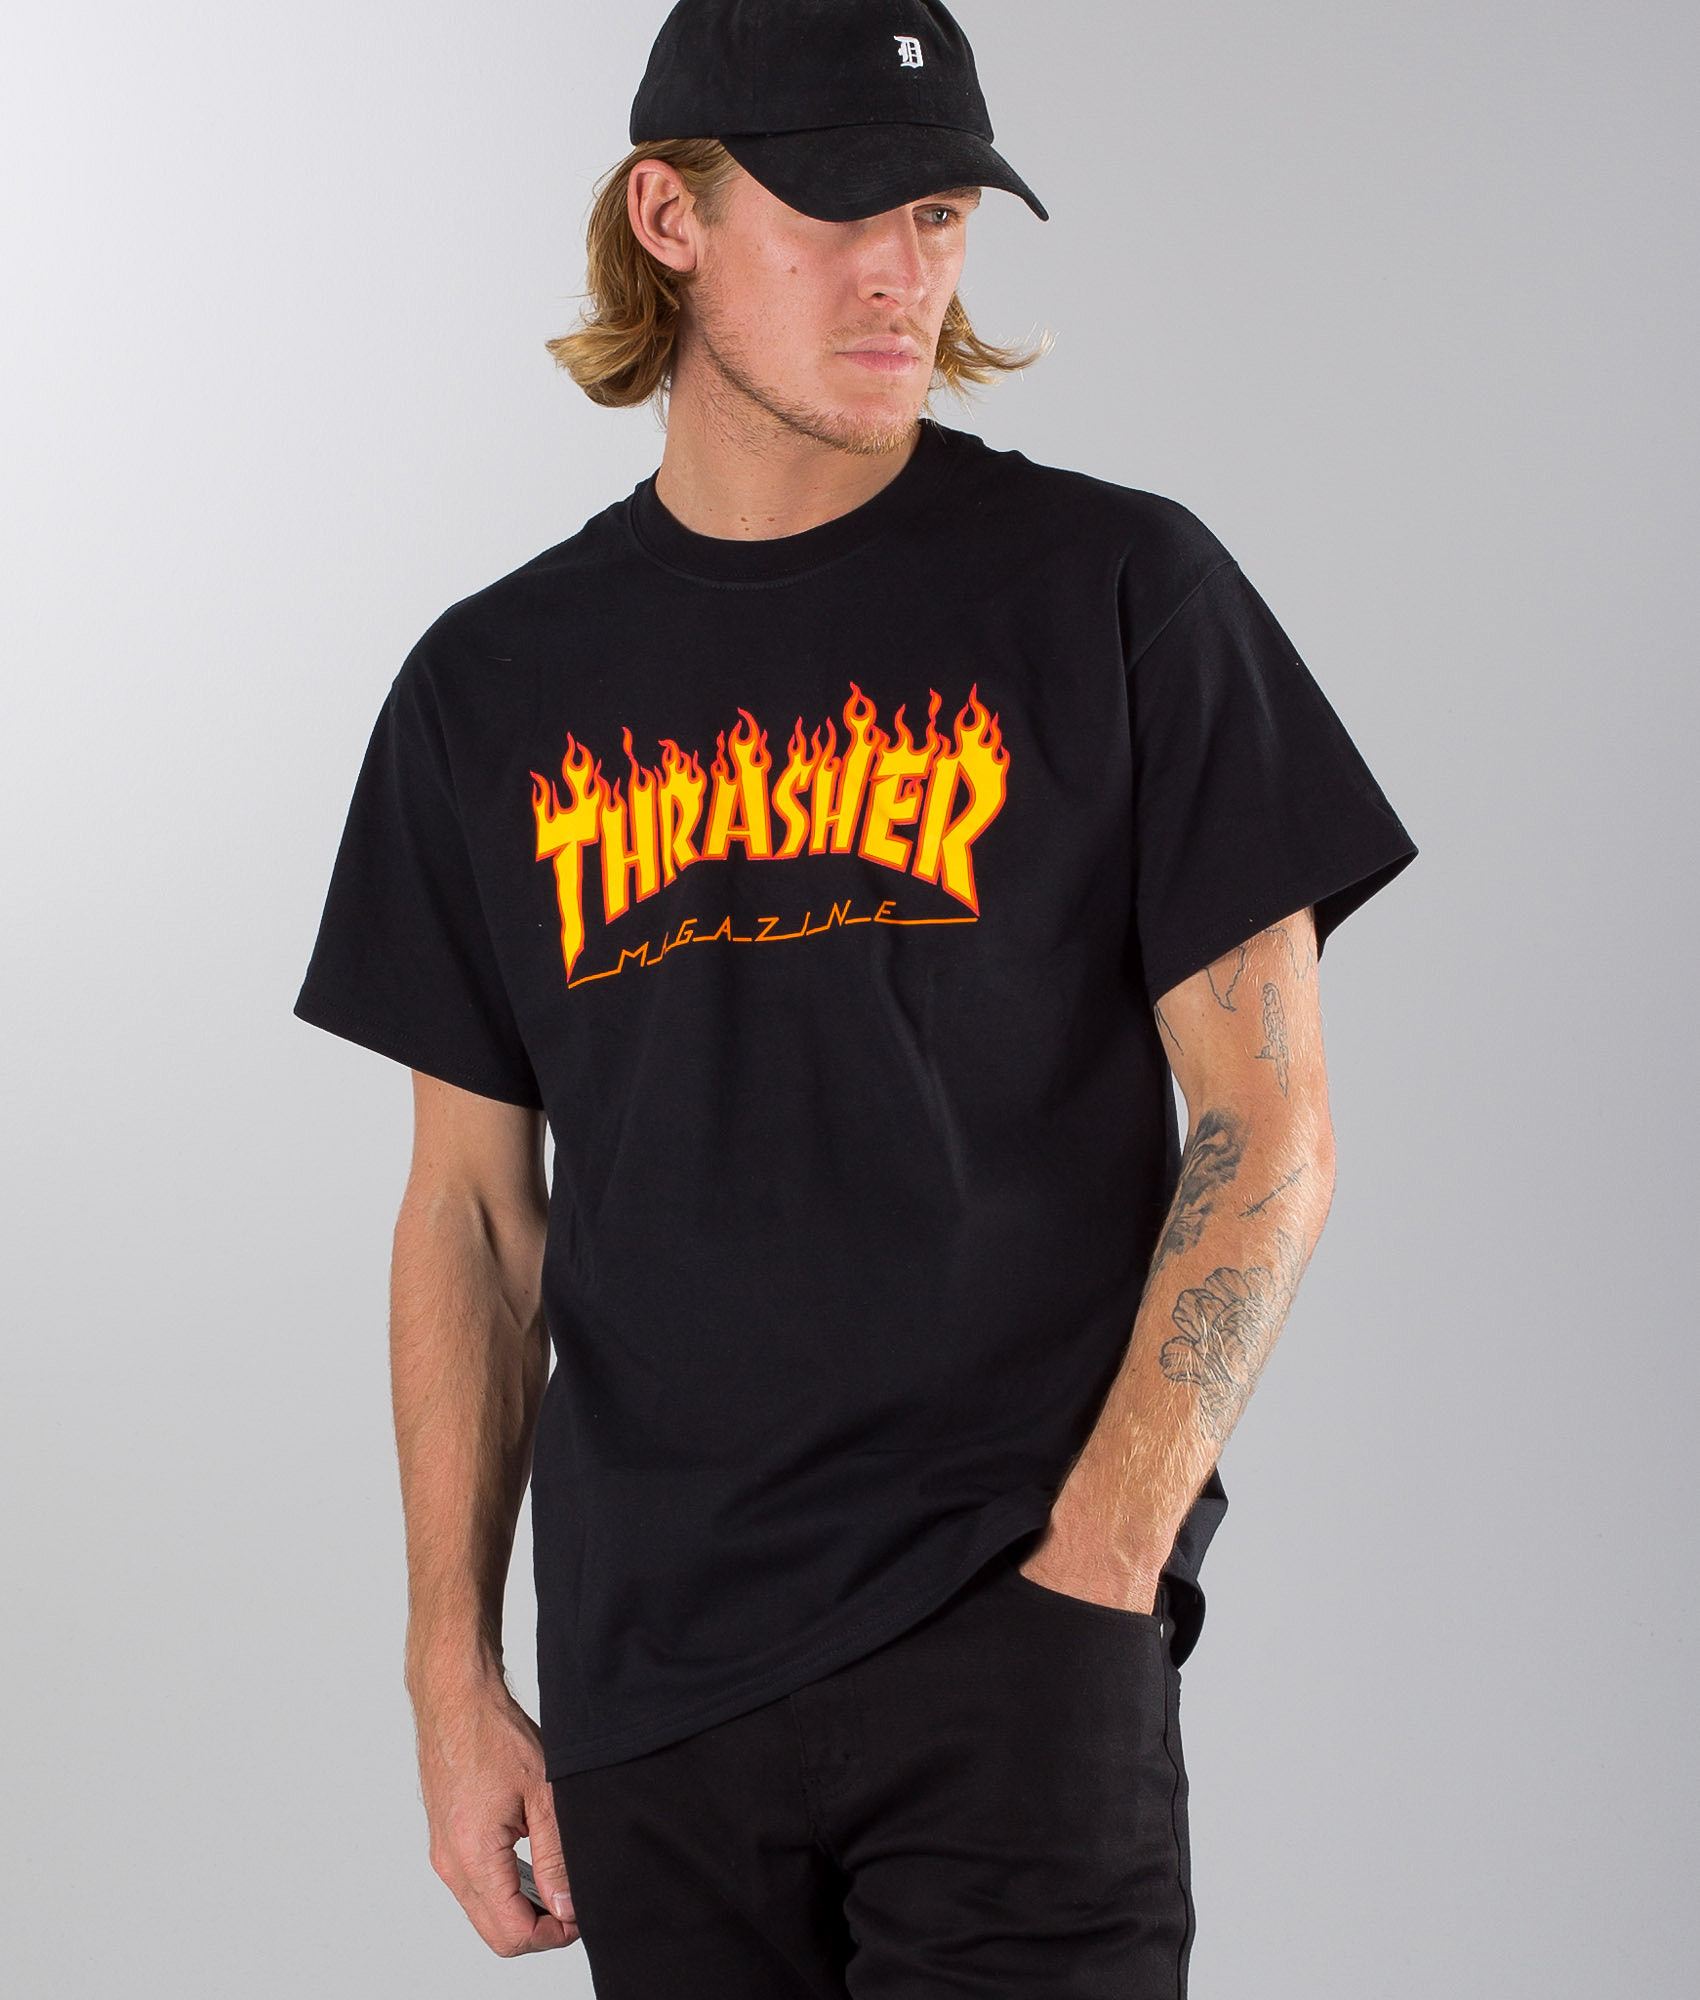 Thrasher Flame T-shirt Black - Ridestore com